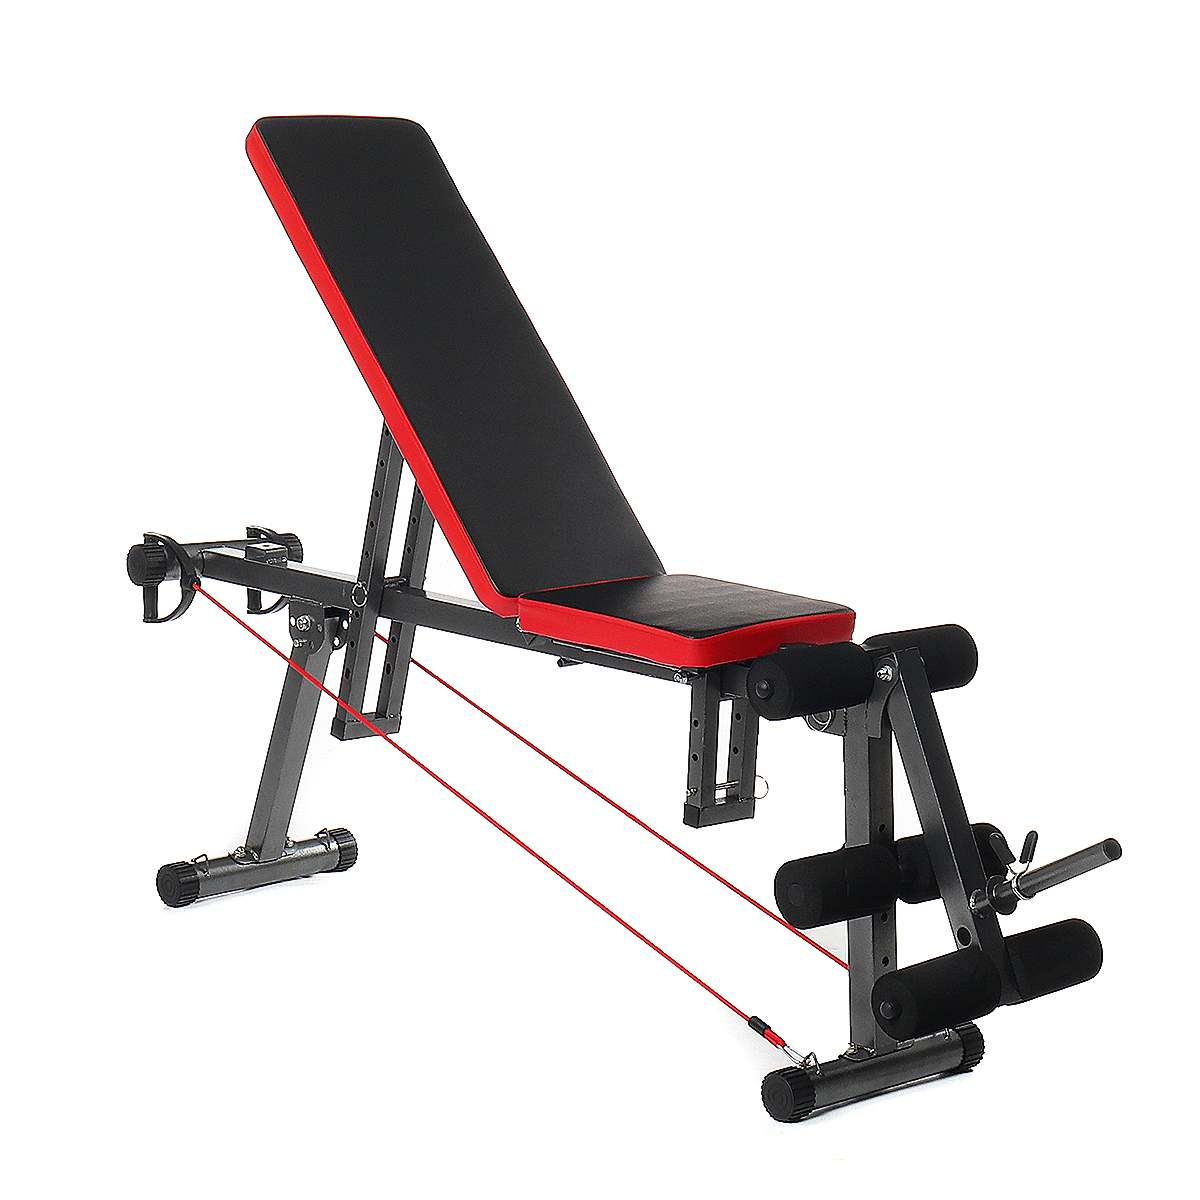 Adjustable Sit Up Bench Multi-position Comfortable Stable Durable Multi-functional Steel Fitness Workout Bench